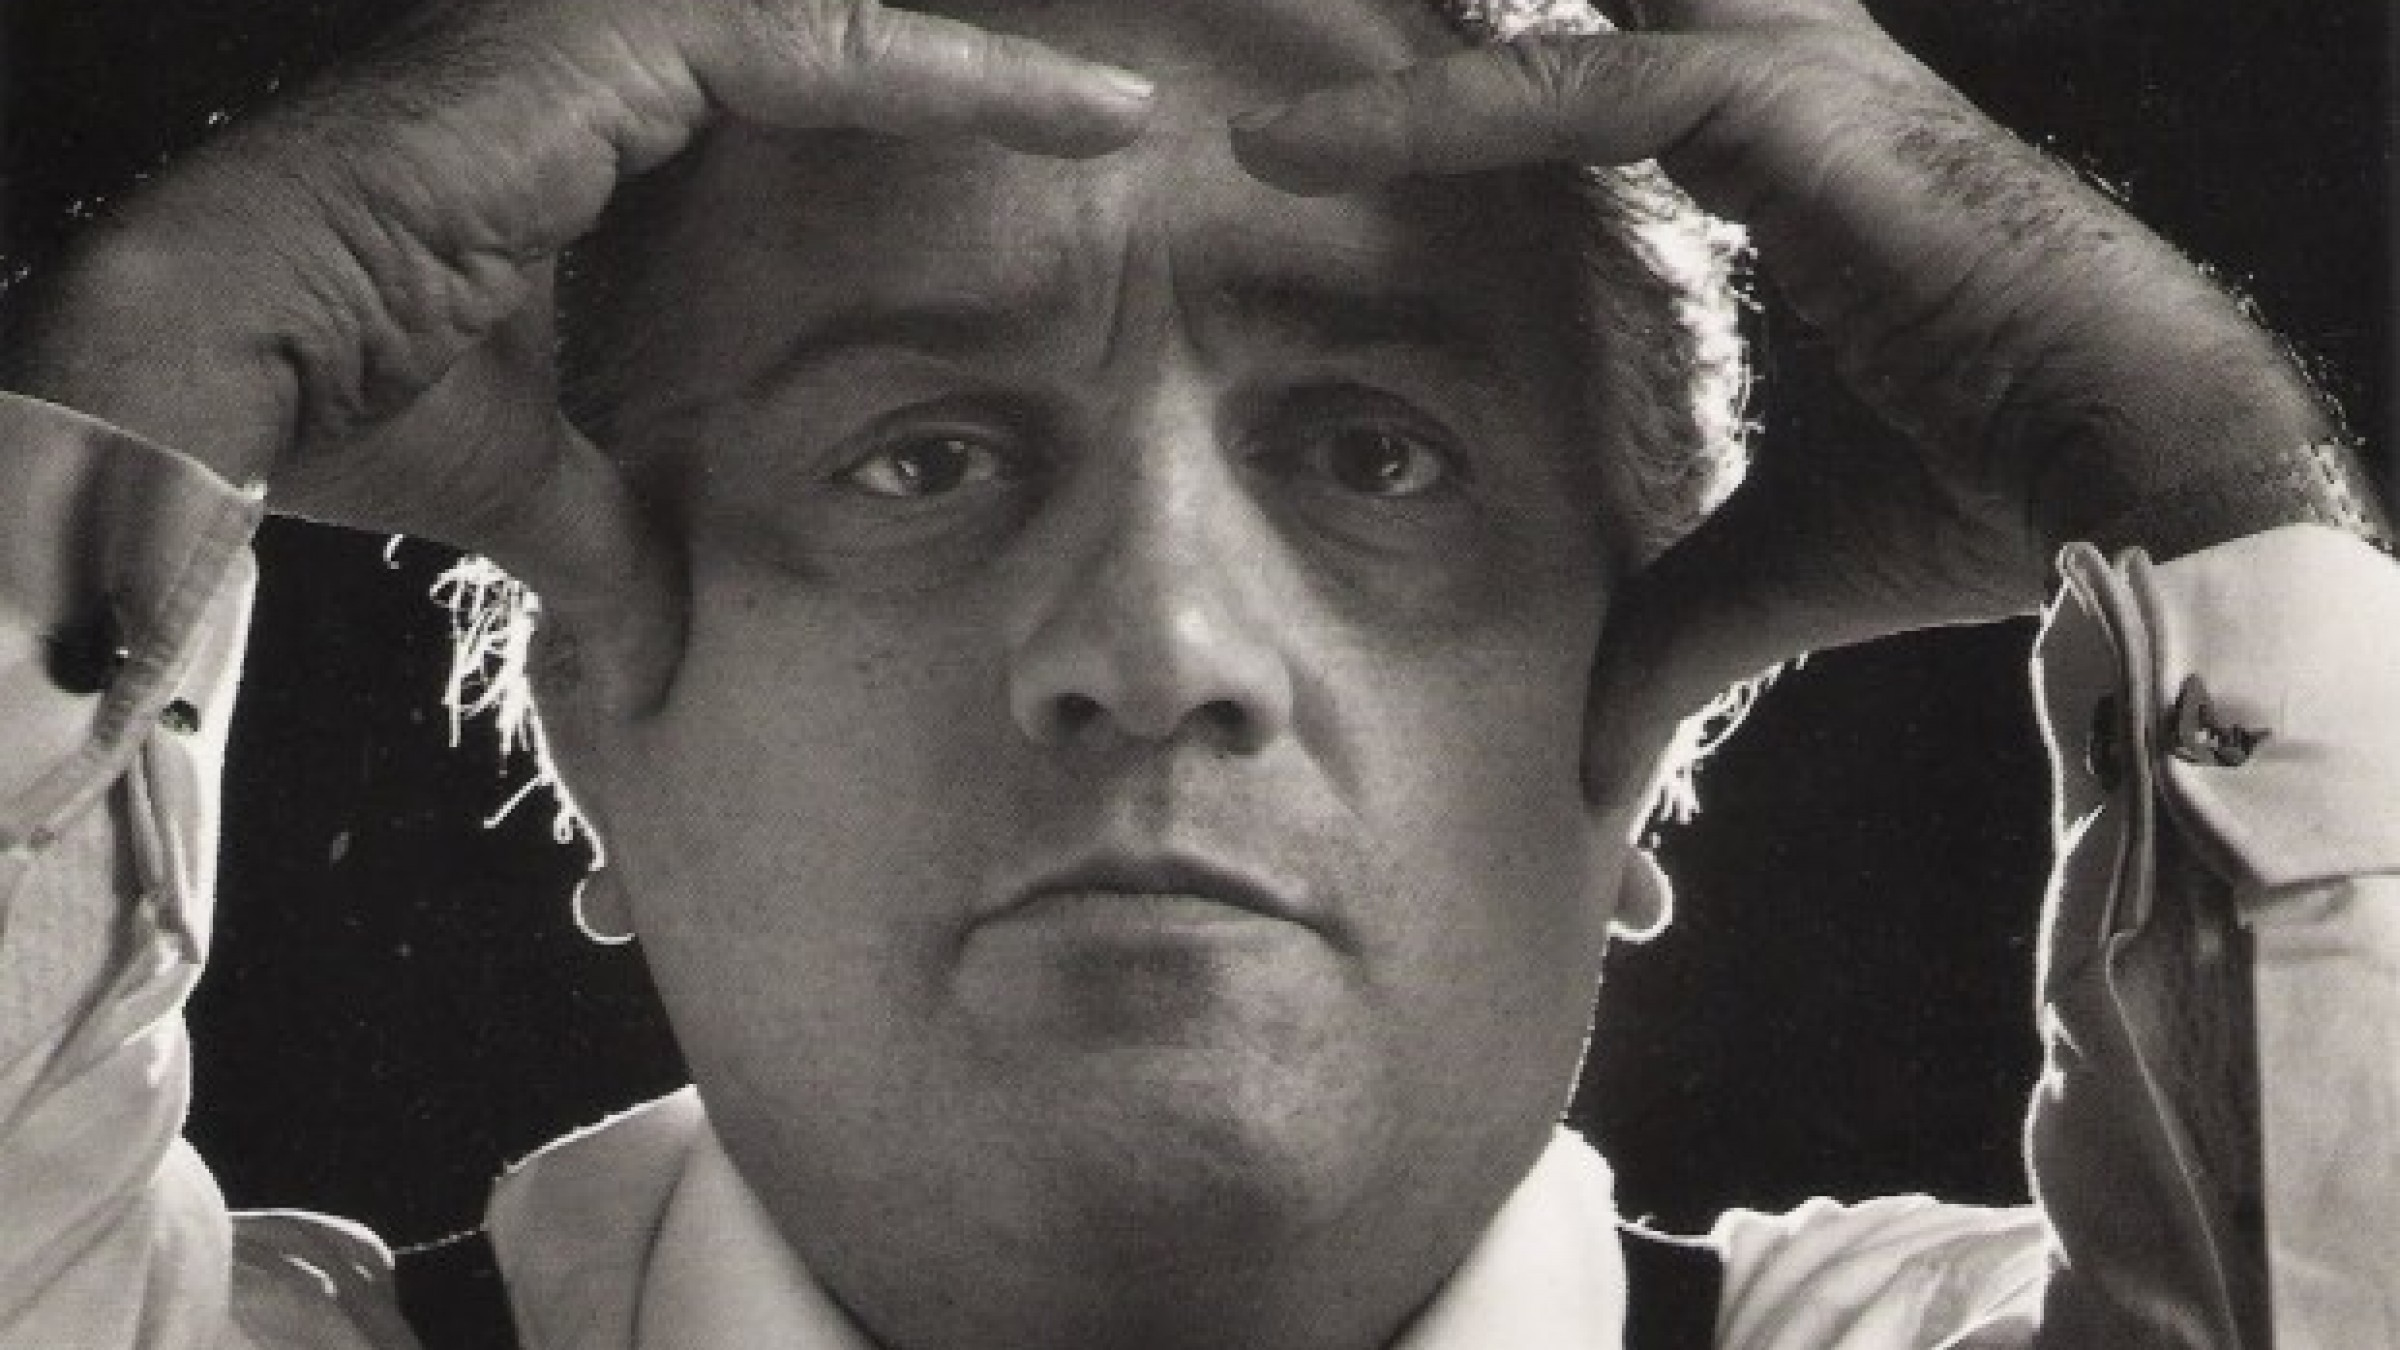 death of federico fellini left a large gap in the movie world